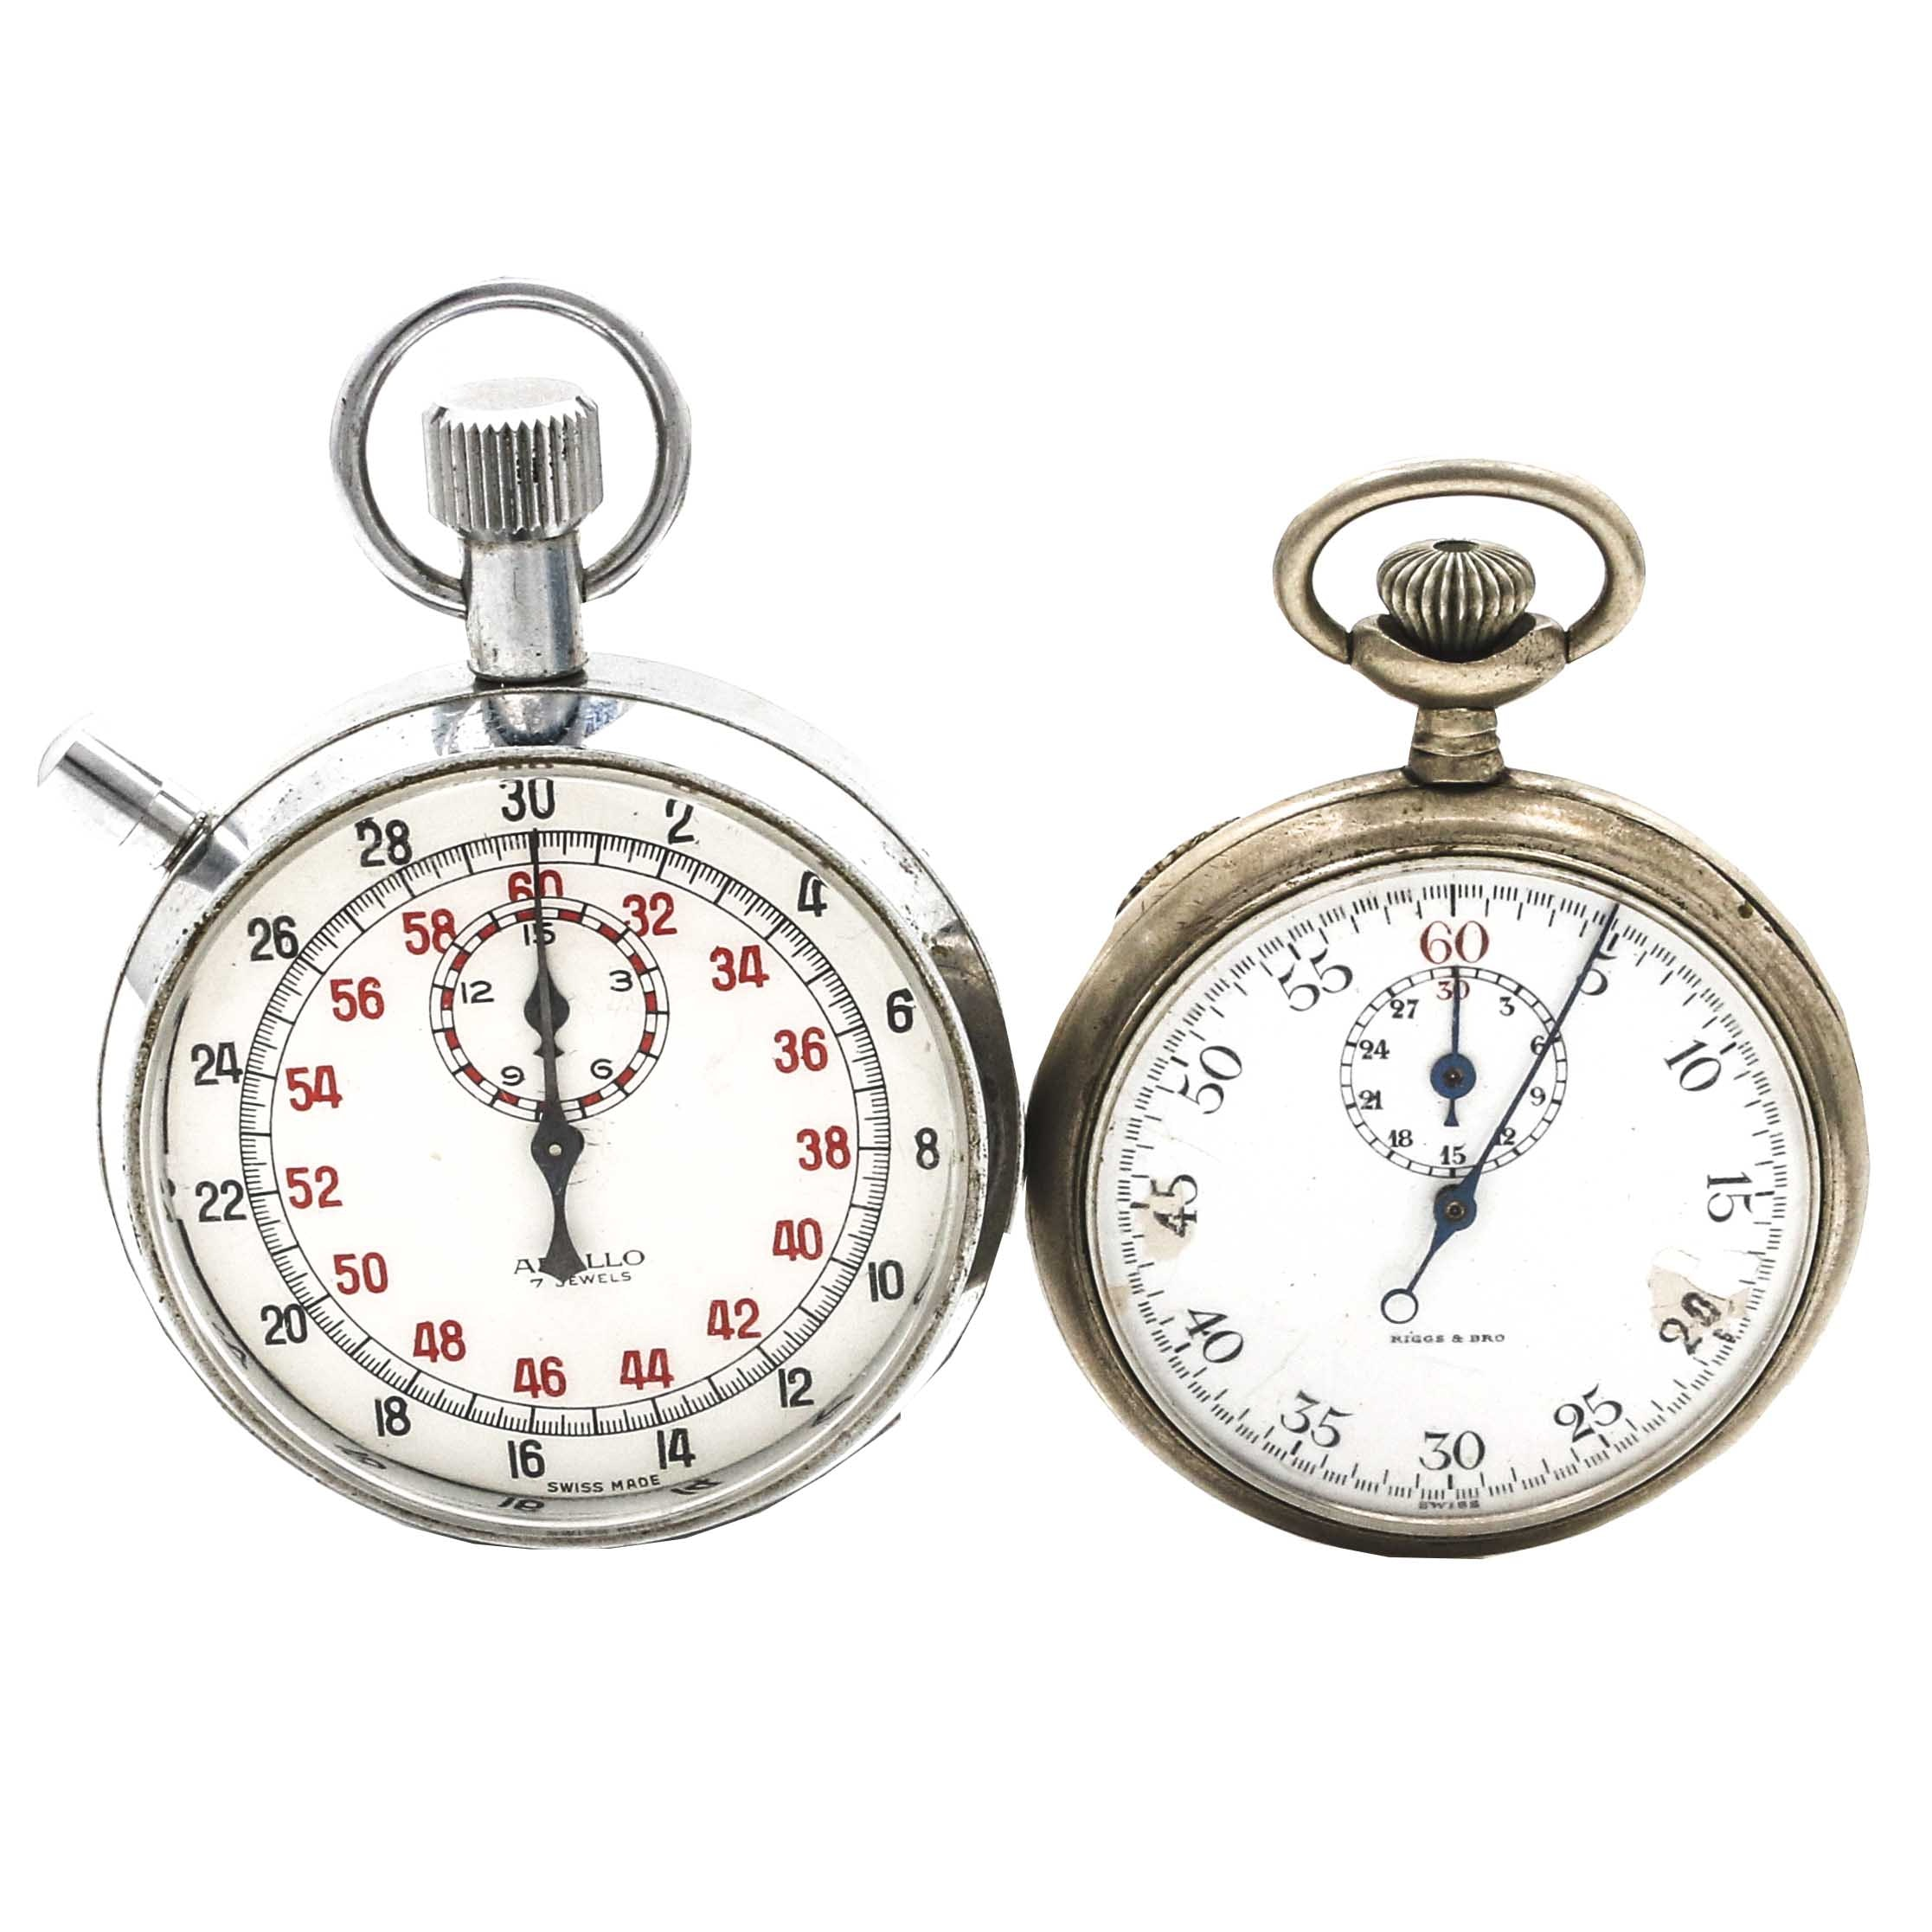 Pair of Stop Watches